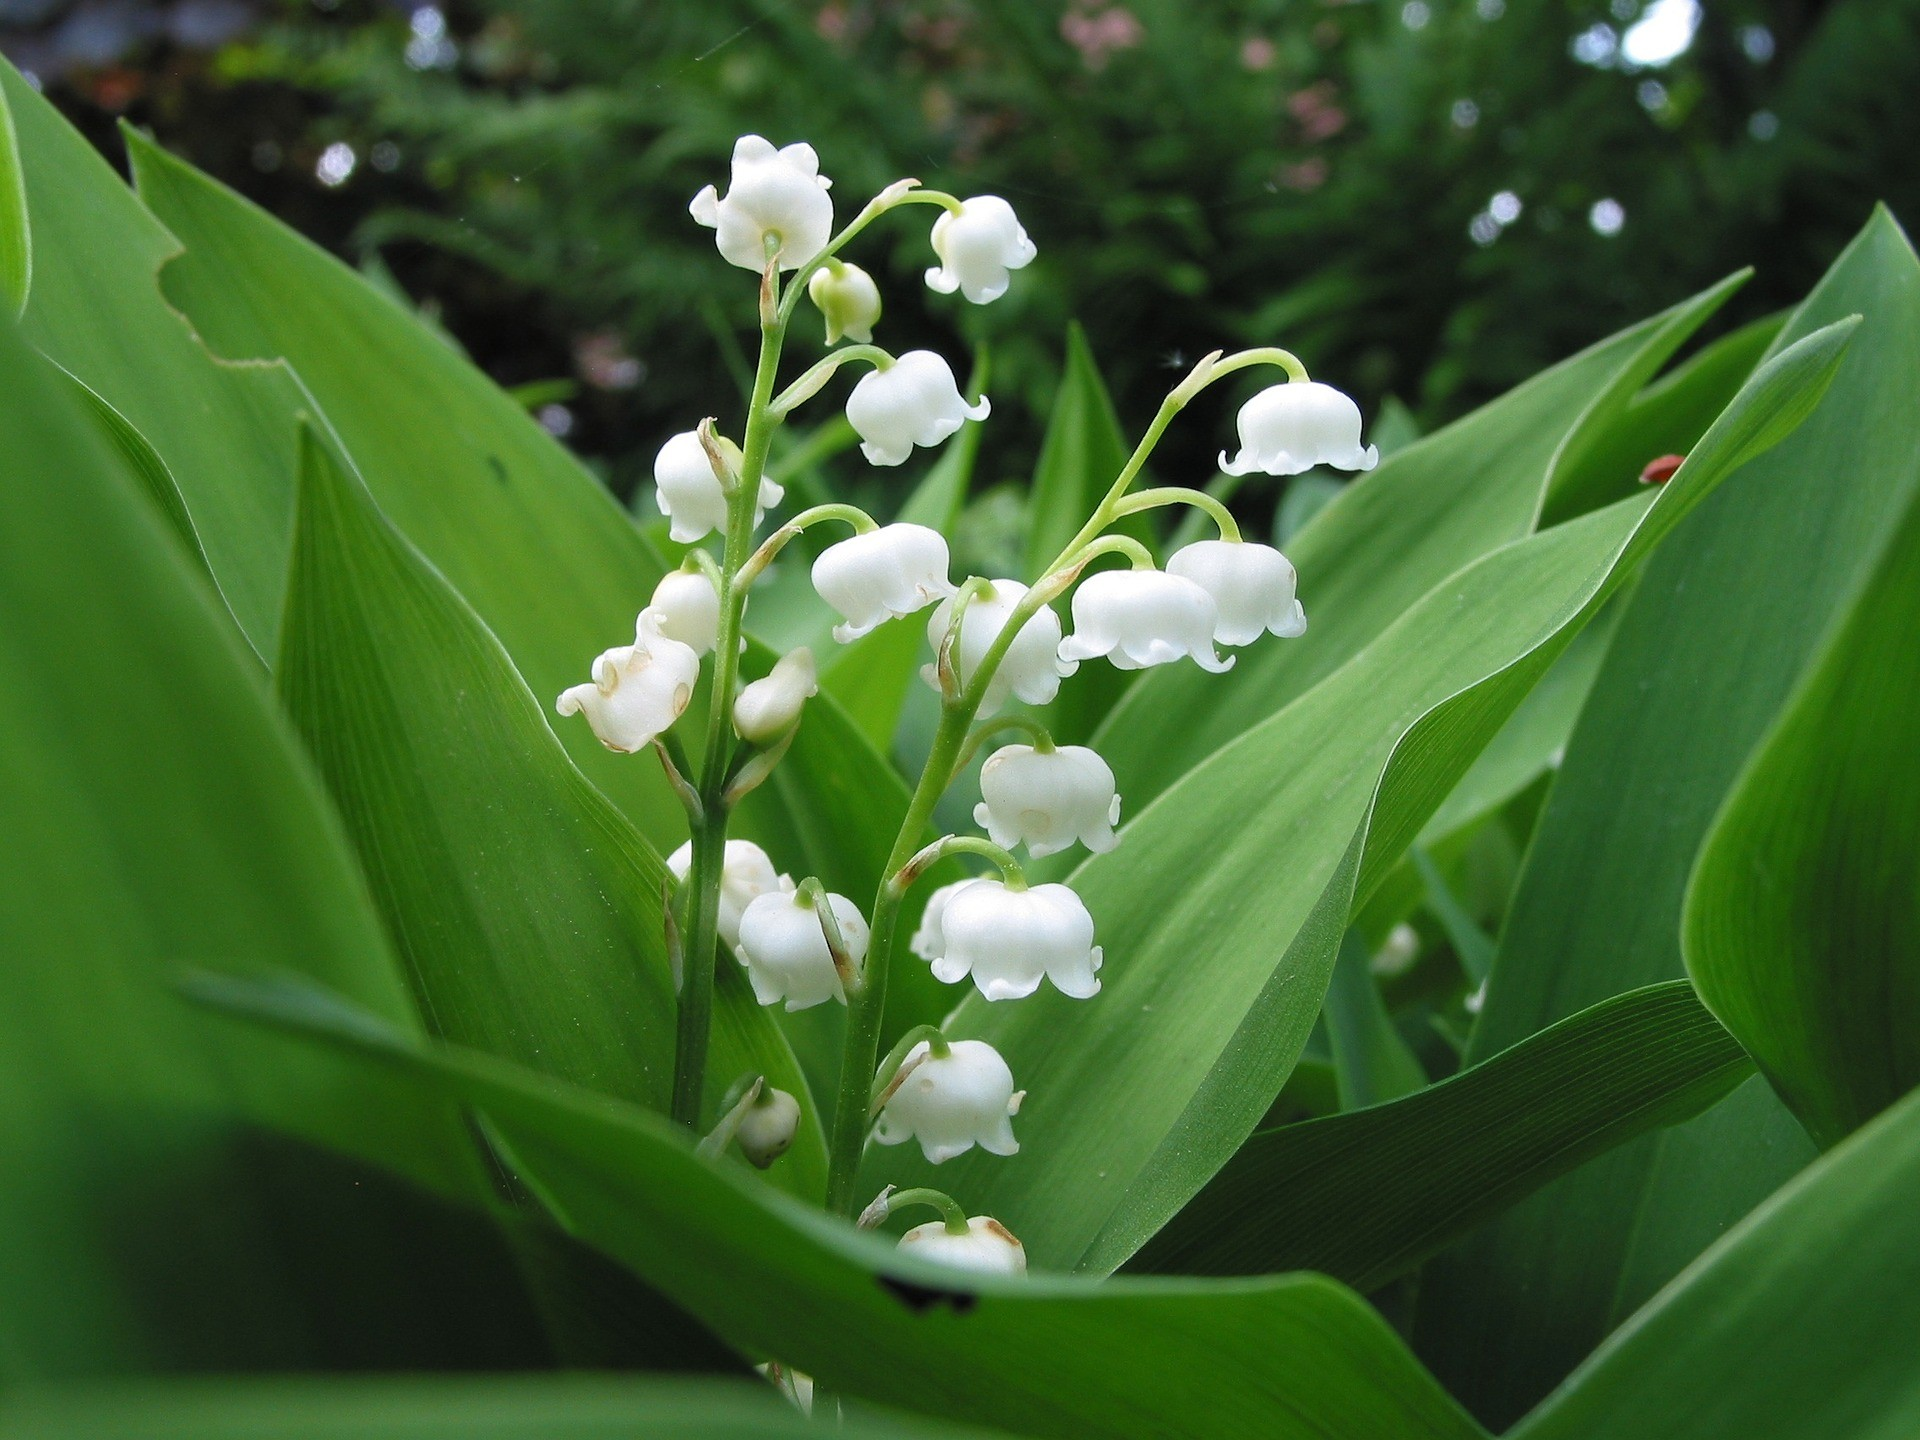 May 1s Tradition The Lily Of The Valley In Belgium Article The